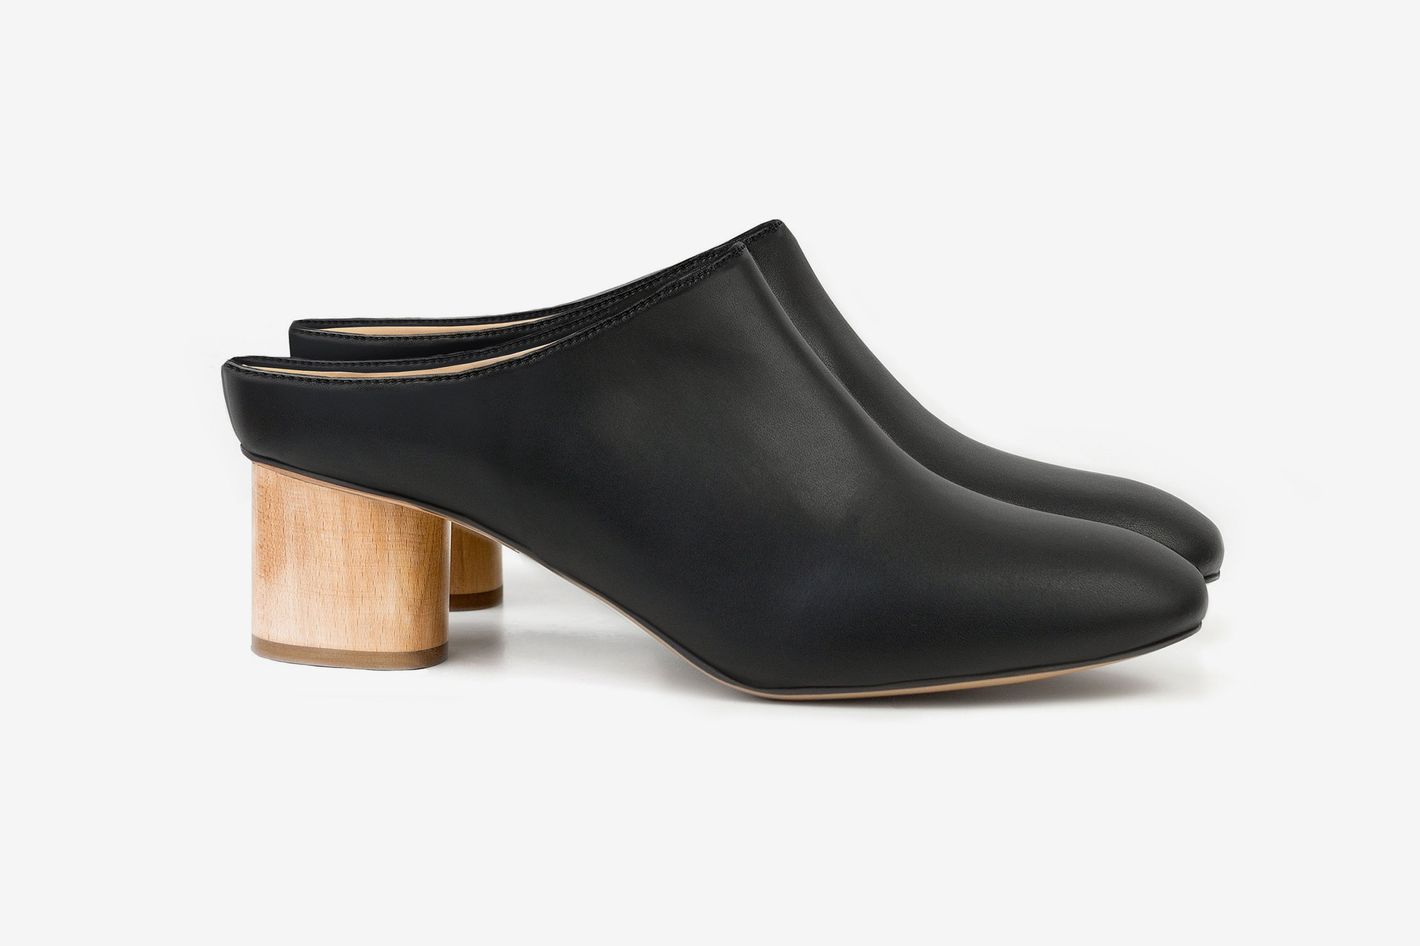 Sydney Brown Low Mule Black